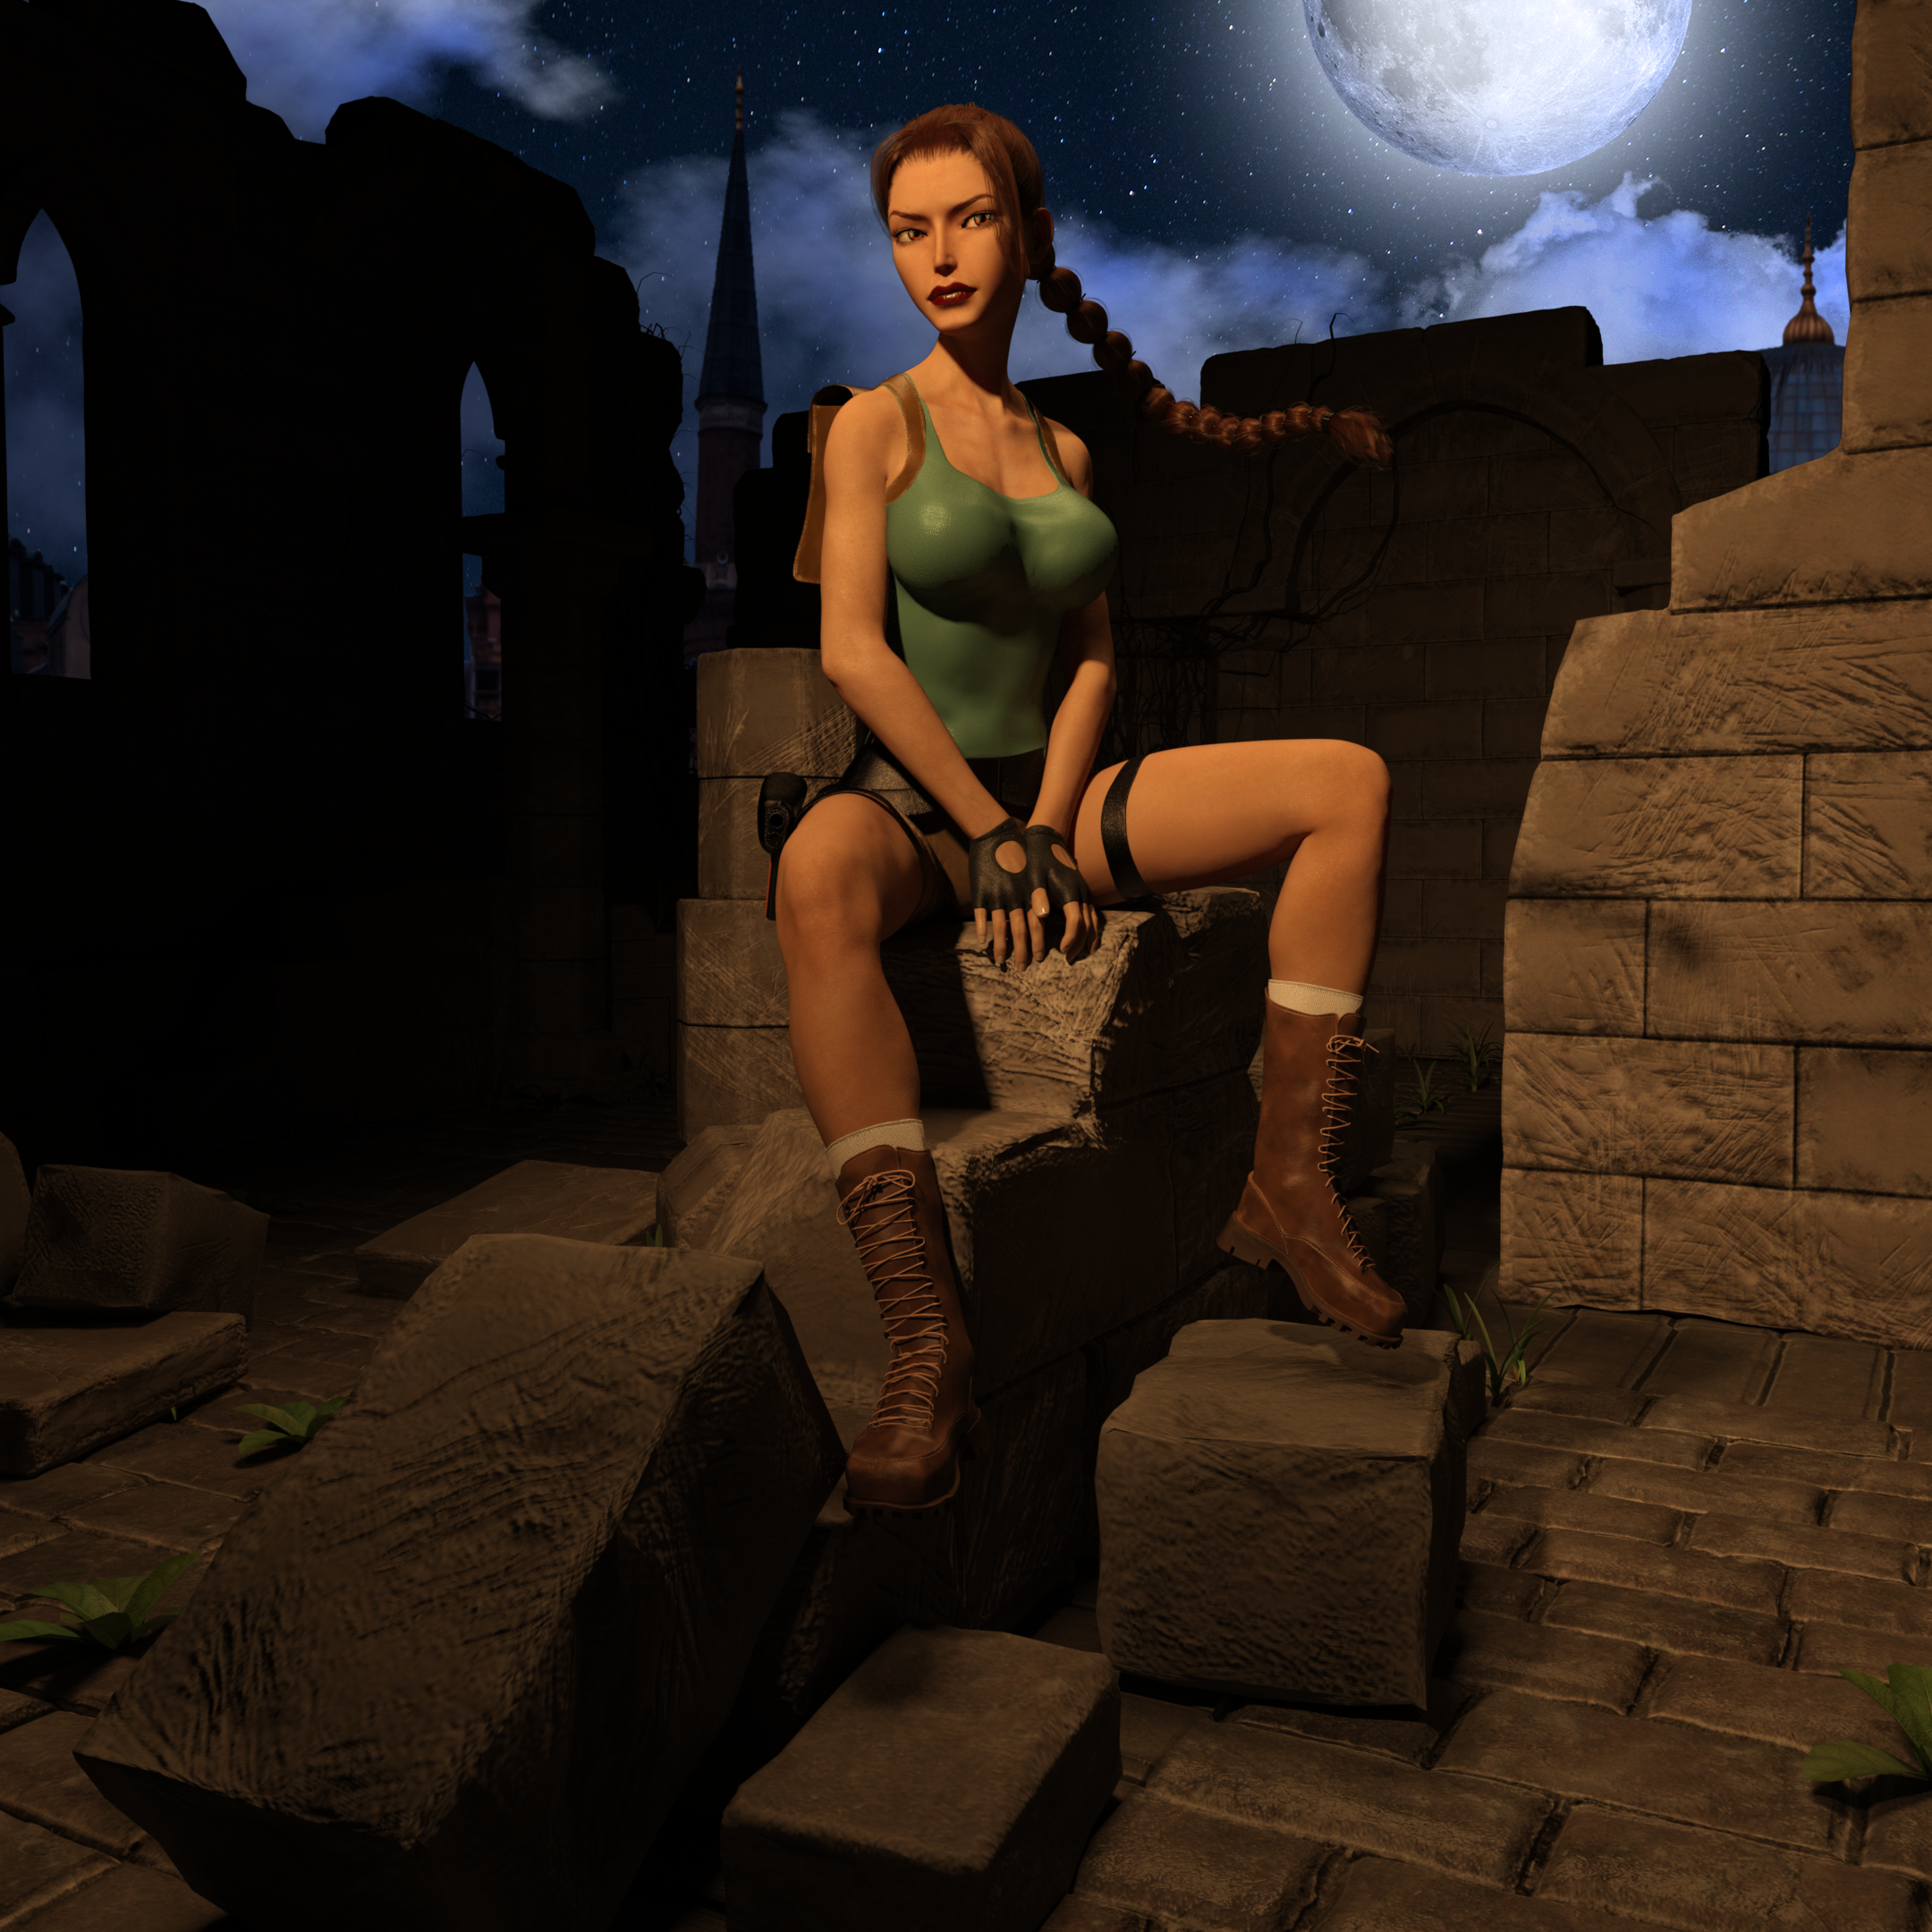 Classic Tomb Raider Wallpaper: Classic Raider 9 By Tombraider4ever On DeviantArt